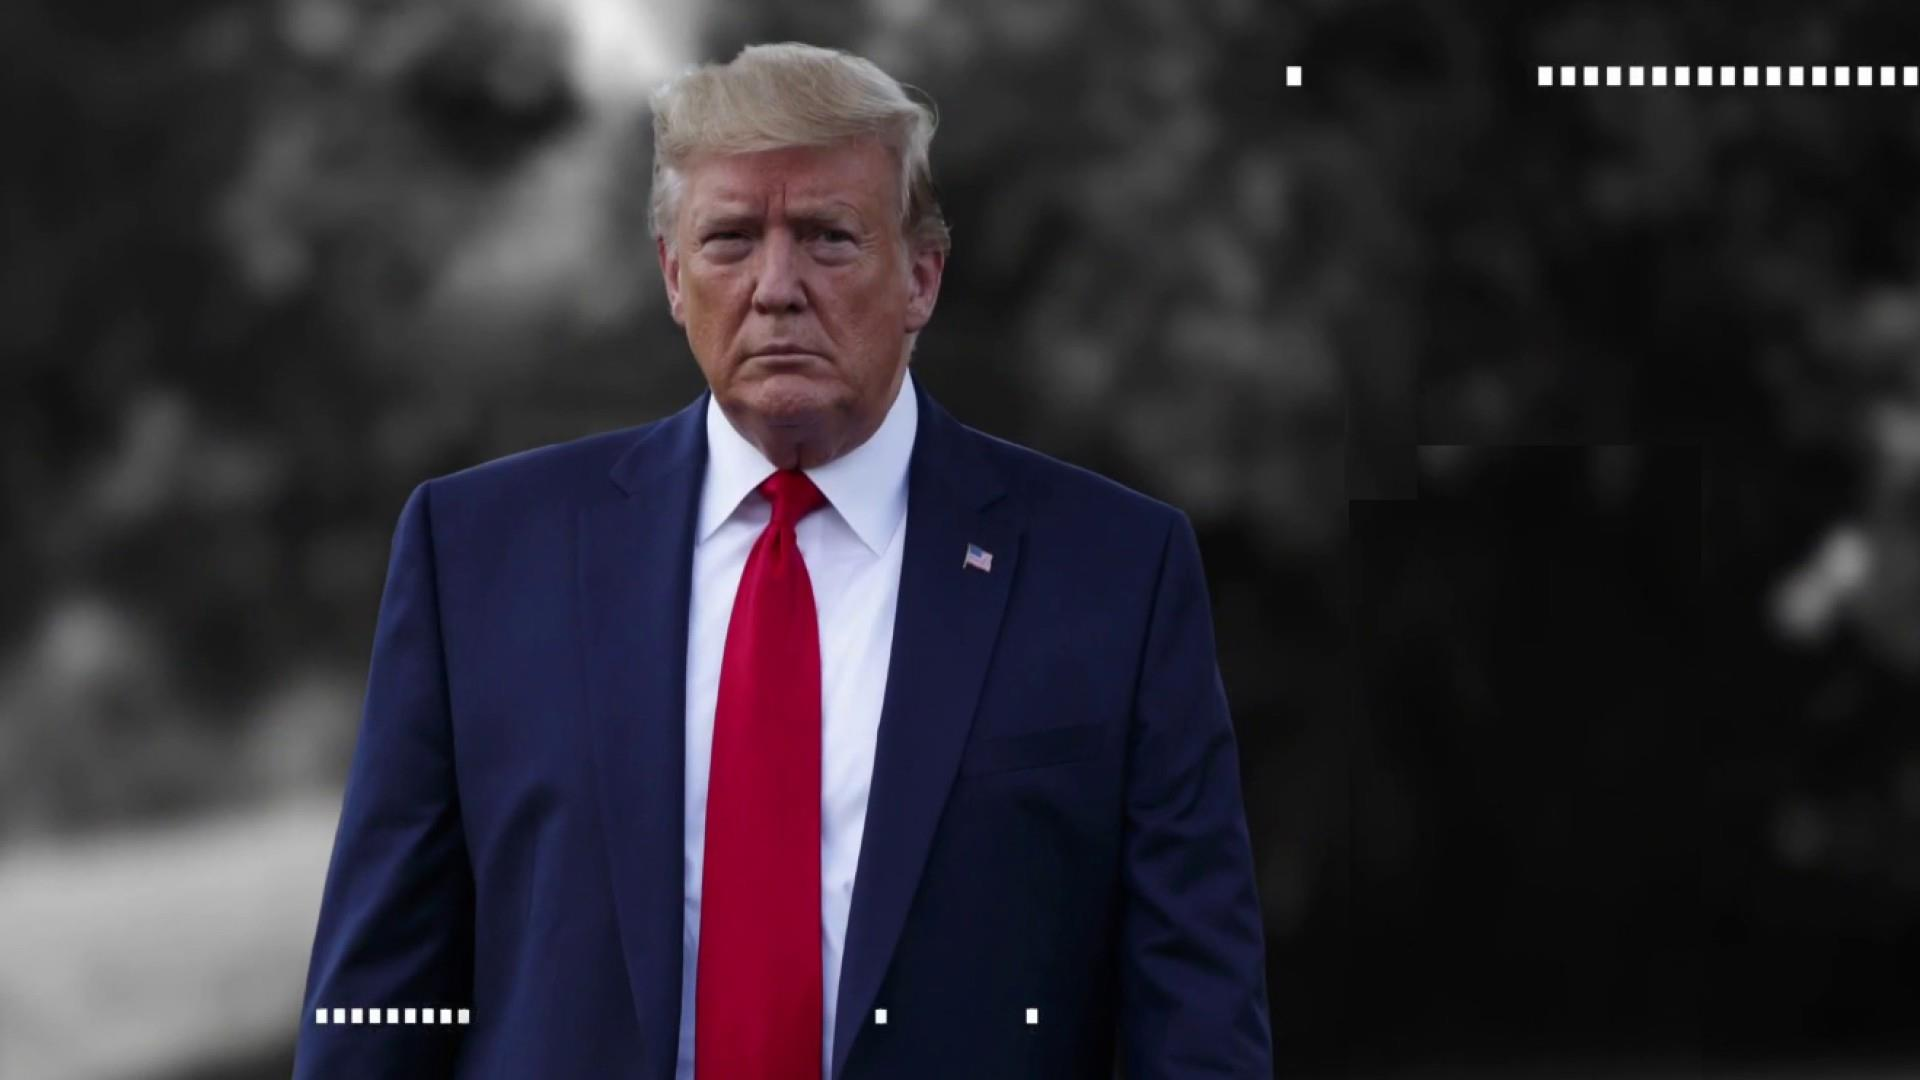 Calls for Trump's impeachment grow from Congress & 2020 Democrats